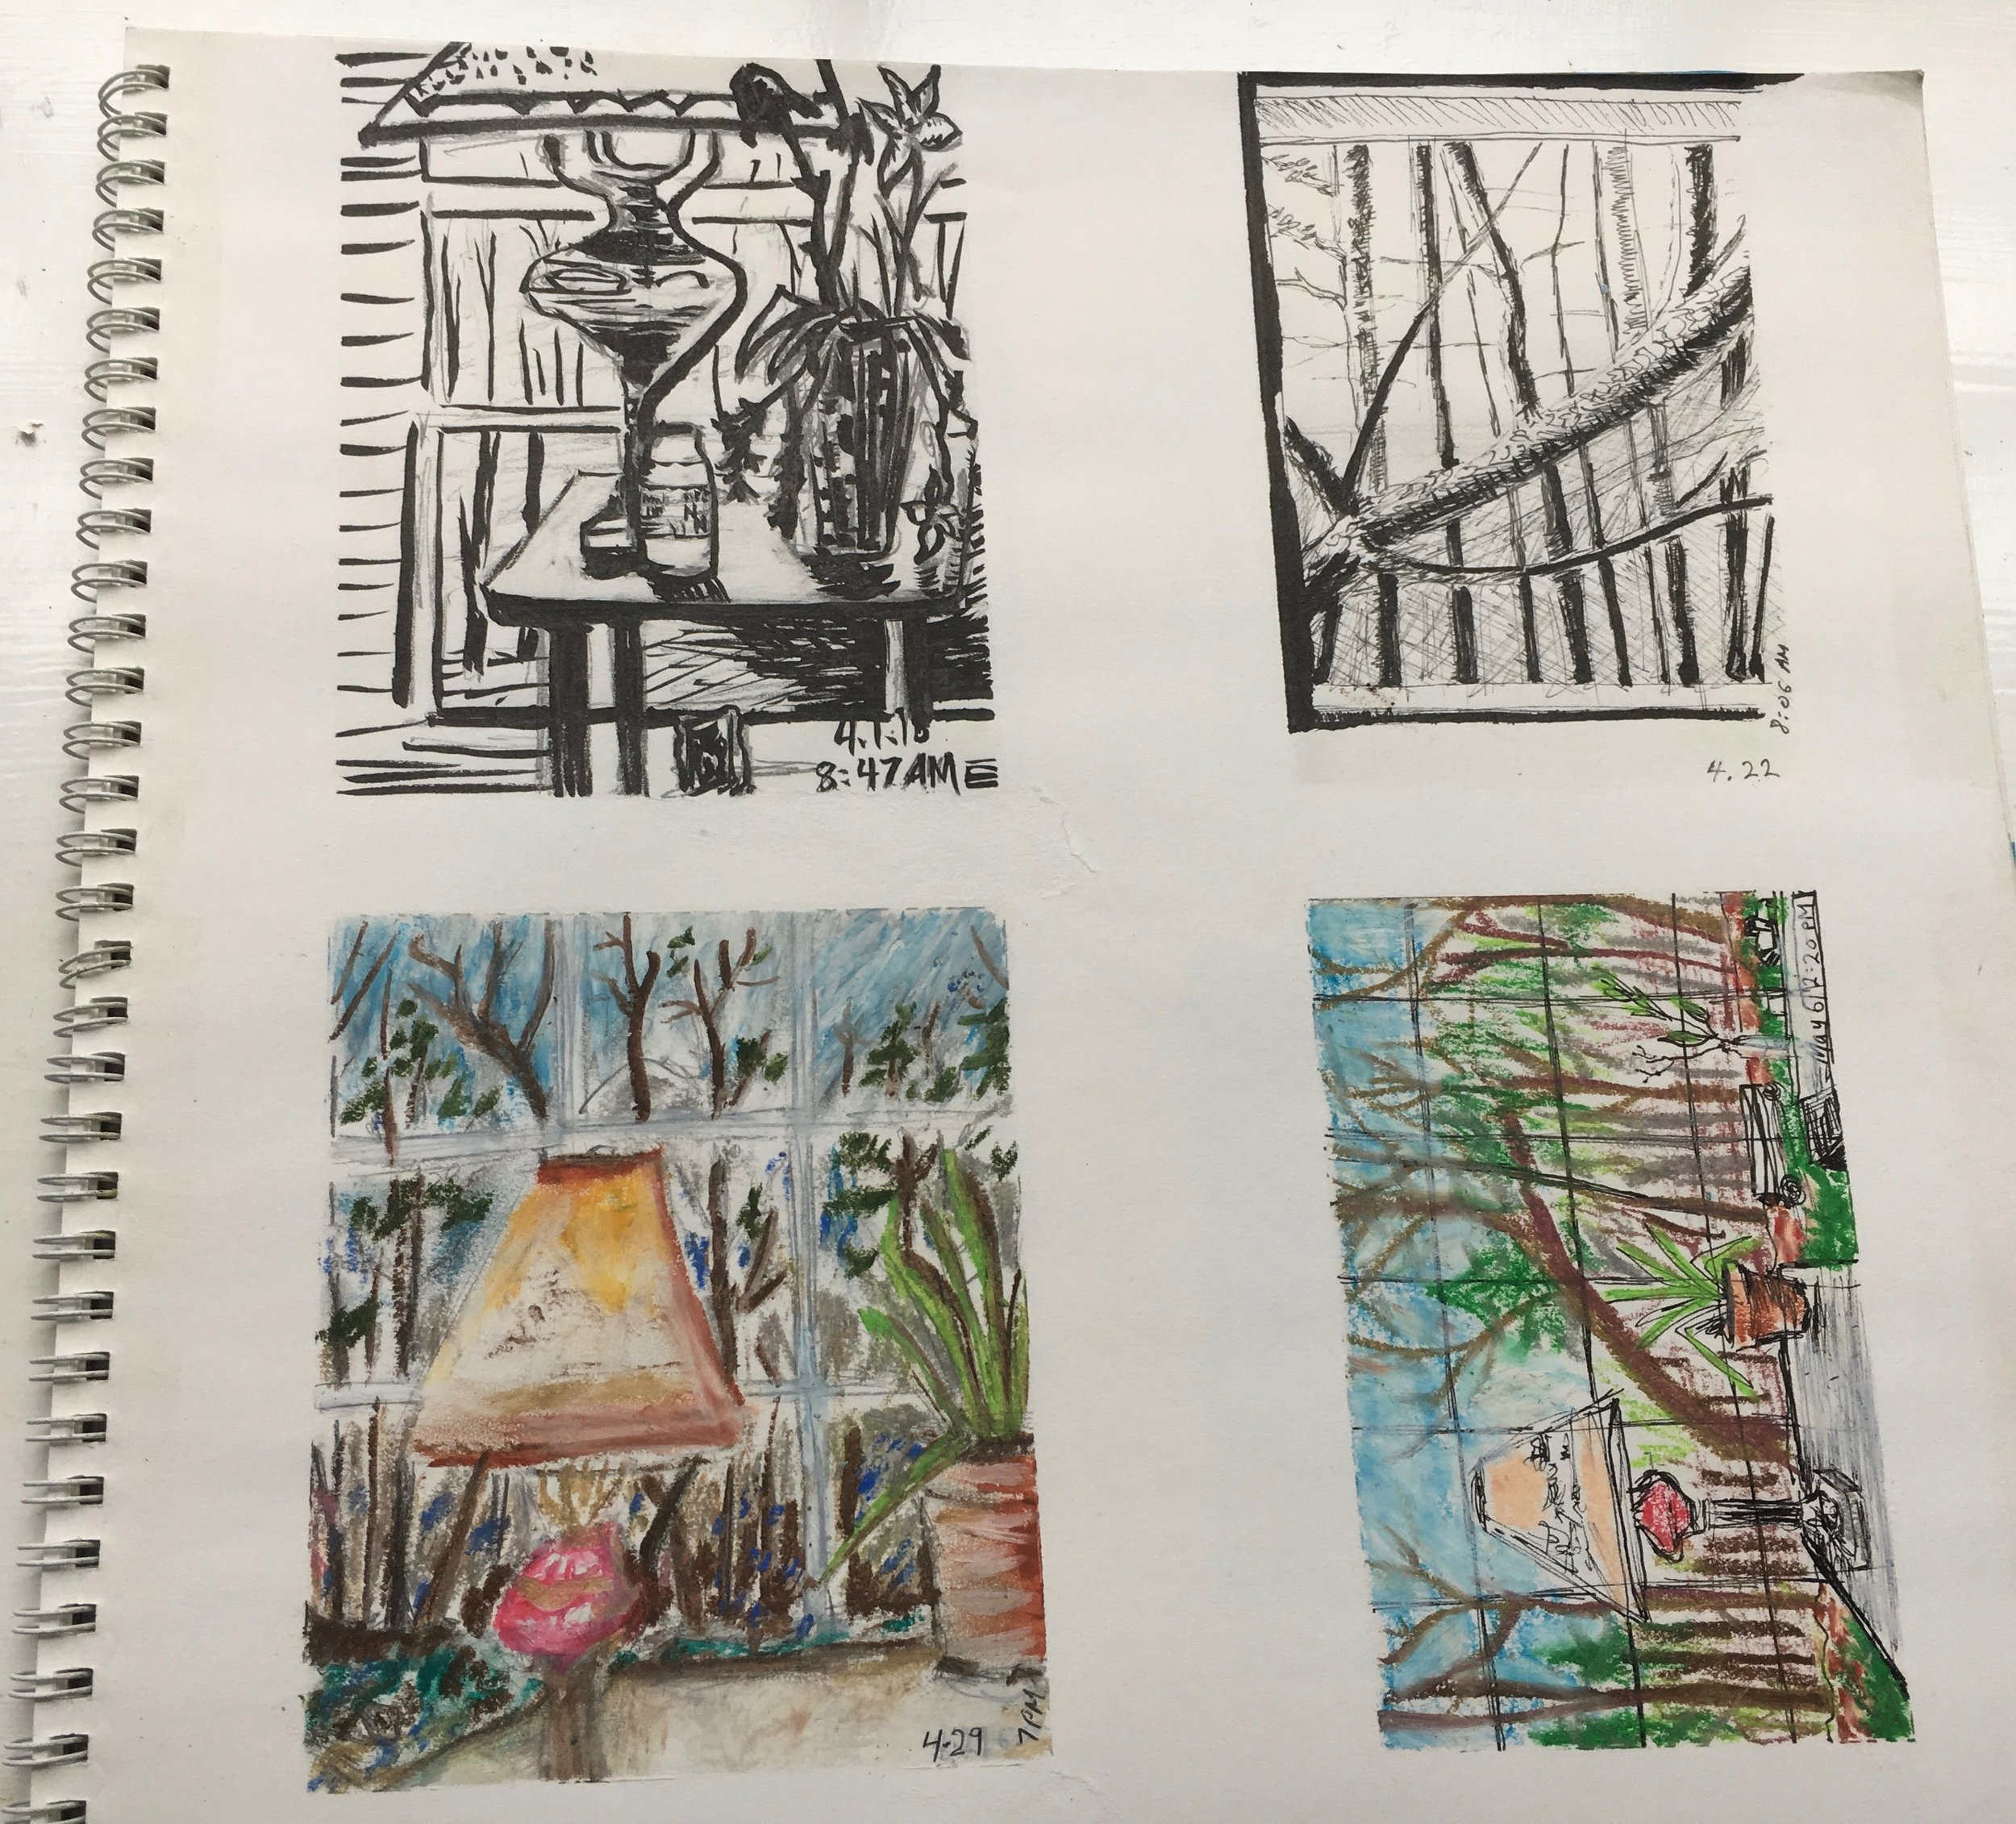 michael chaney and sara chaney poem month of sundays April sketches.jpg